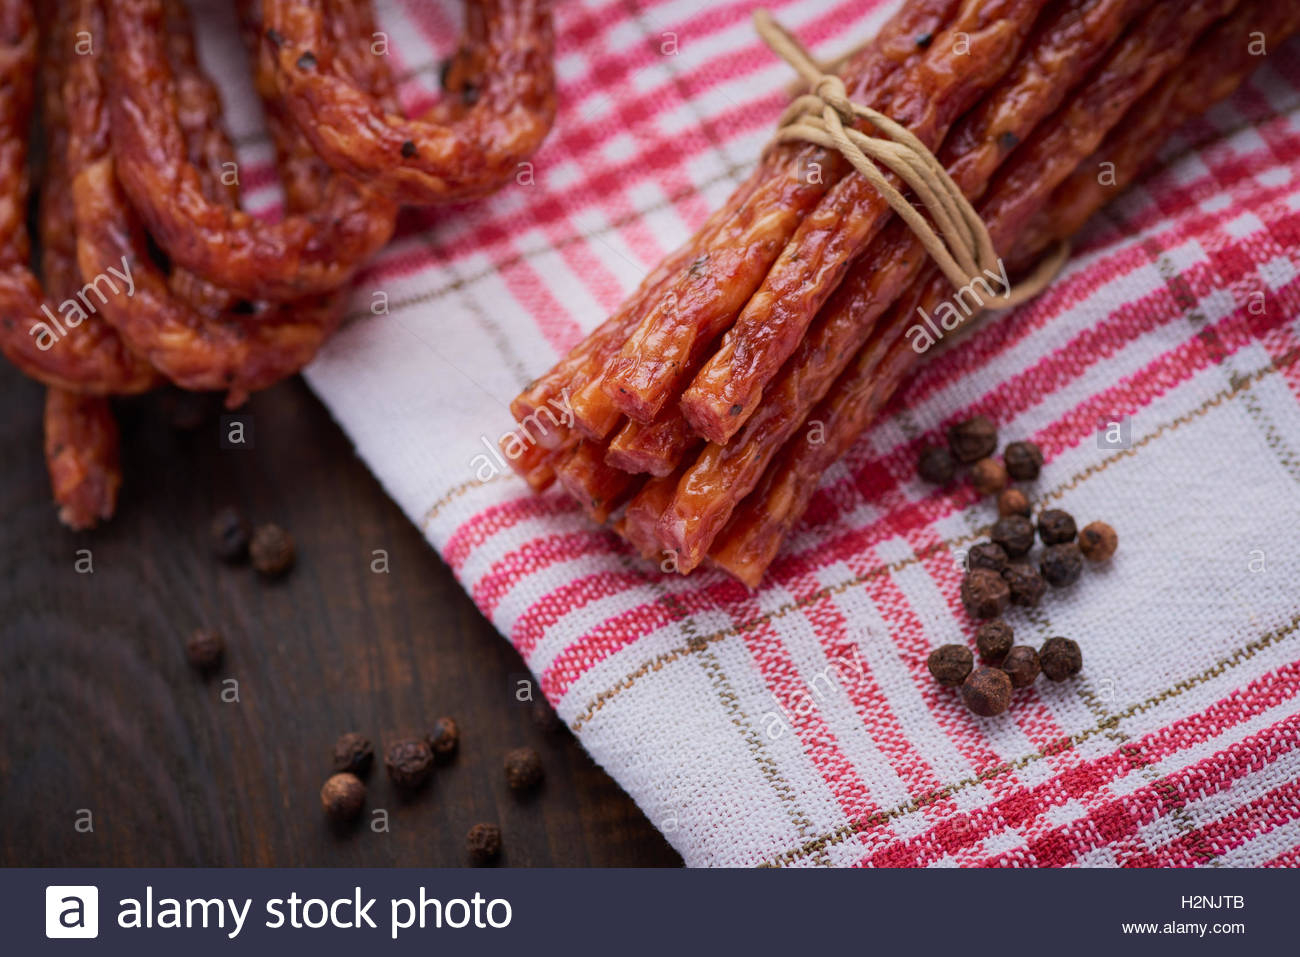 Sausage or kabanos and pepper on vintage wooden boards - Stock Image